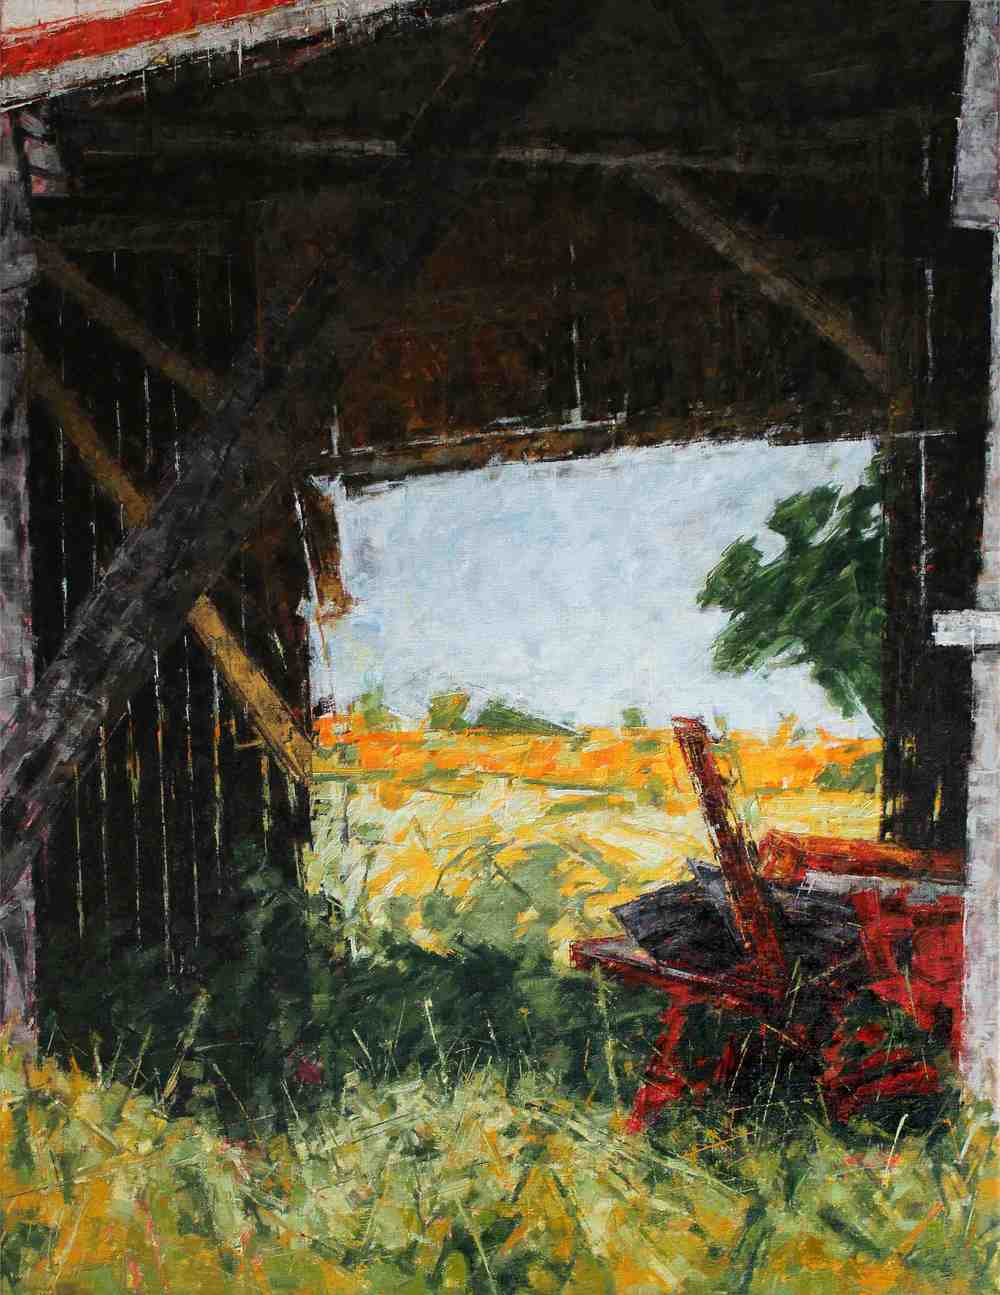 397_Rudman_Barn II_Oil_2015.jpg